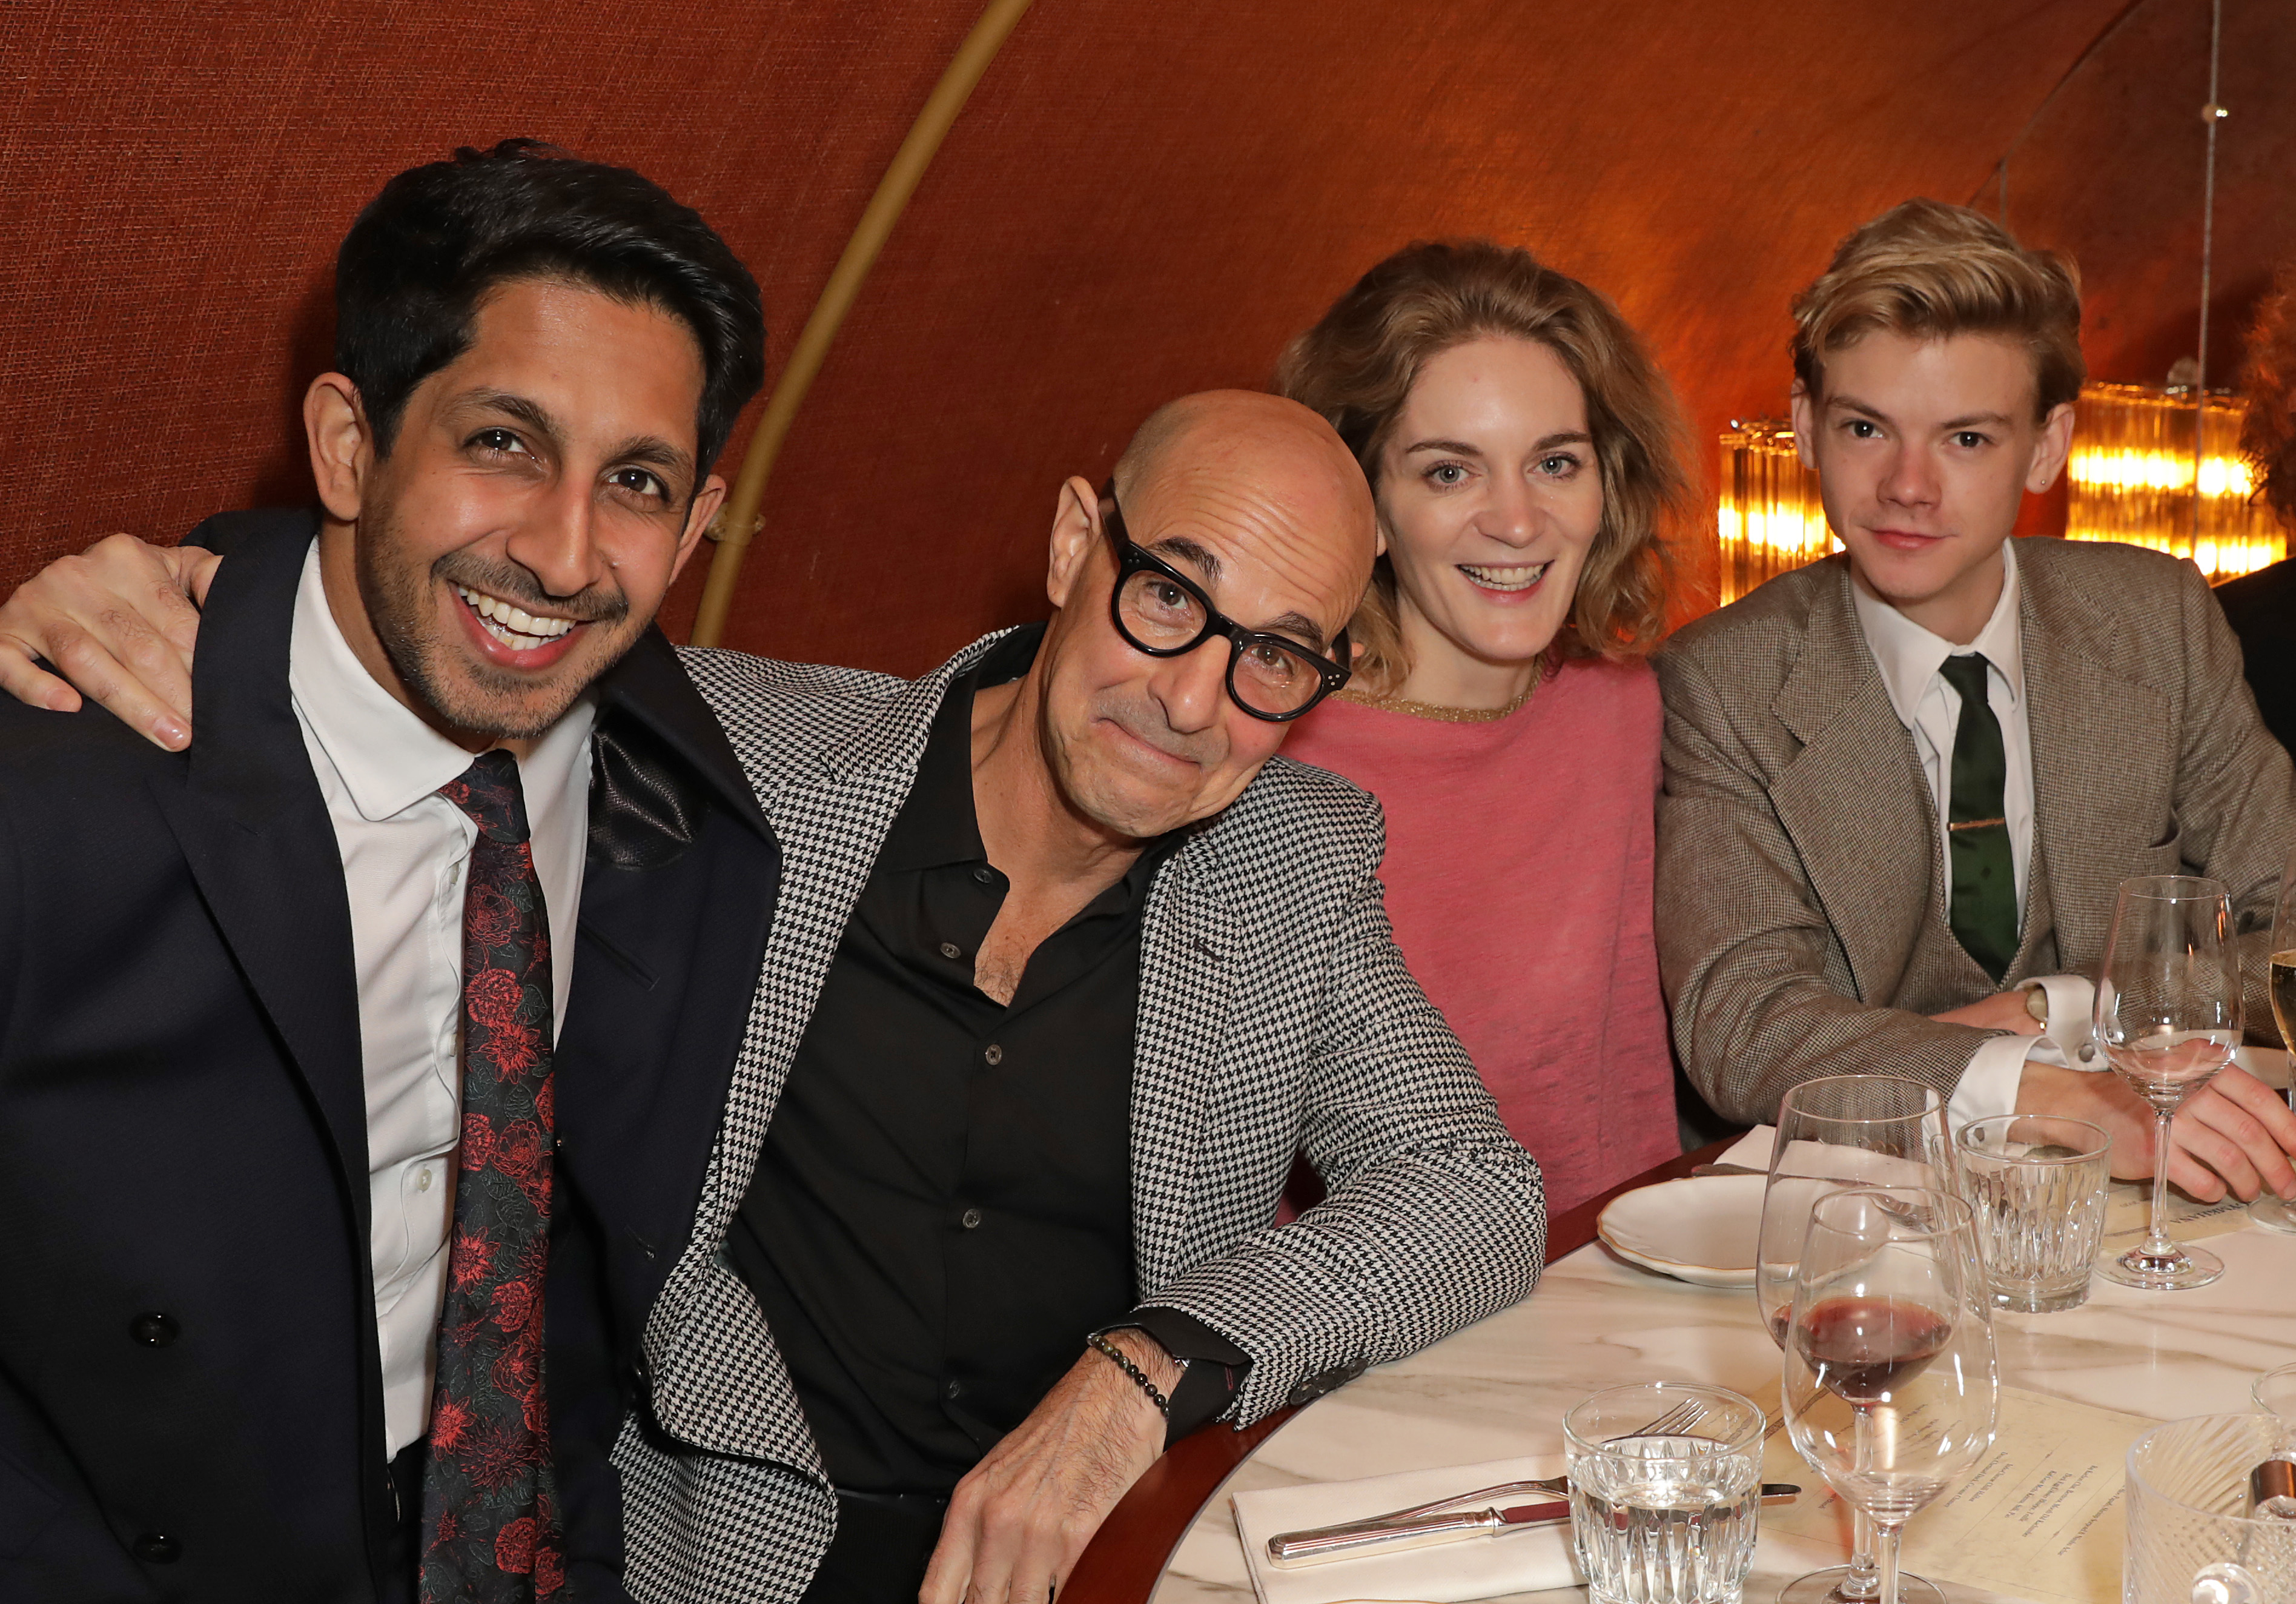 Stanley Tucci, Sagar Radia, Felicity Blunt, and Thomas Brodie-Sangster in a booth at Michelin-starred London restaurant Gymkhana